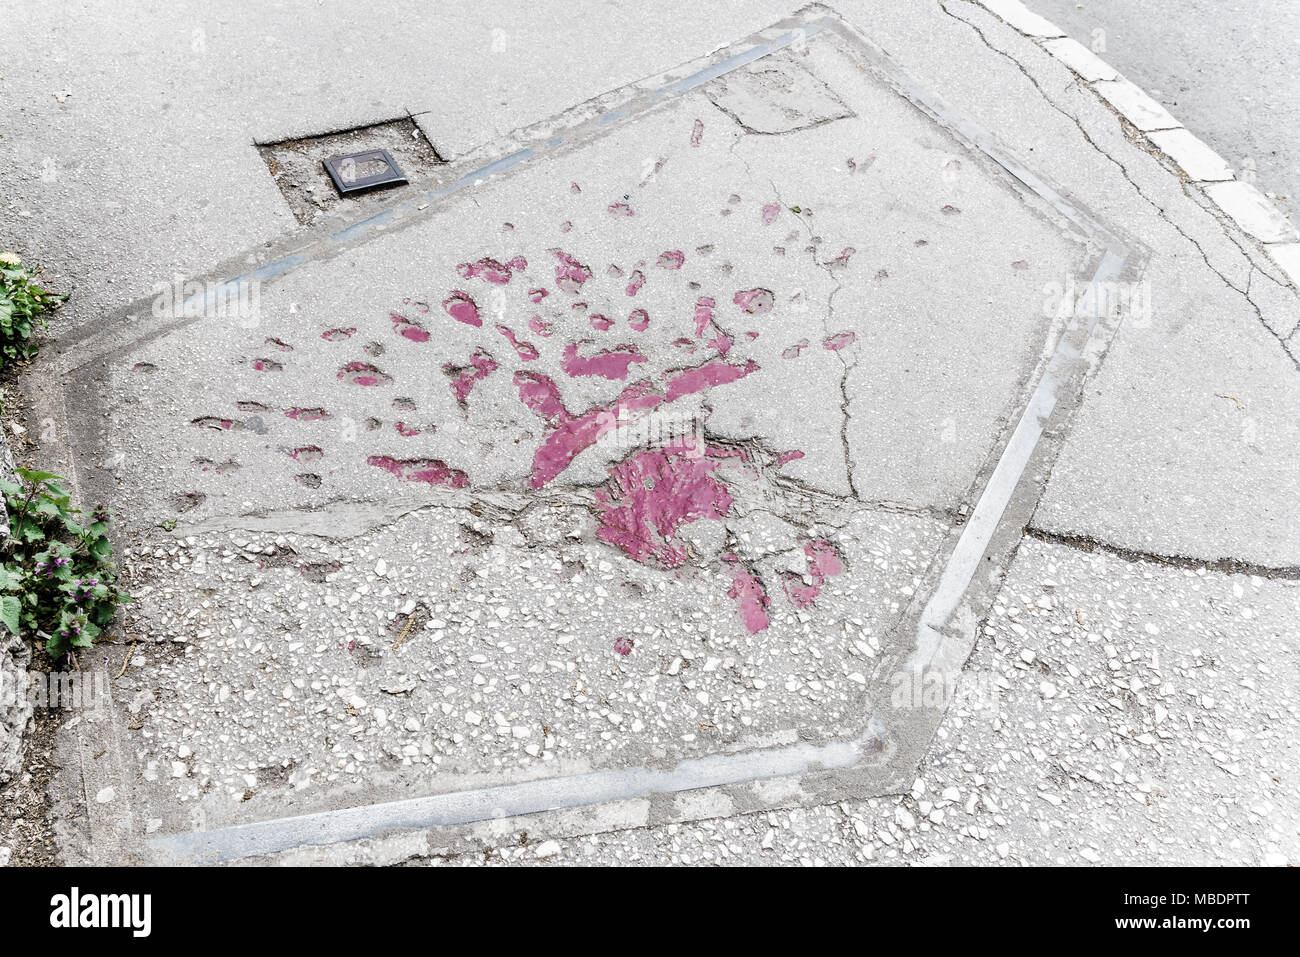 Markings on the streets of Sarajevo indicating where mortar shells exploded during Bosnian war in 1990s Stock Photo